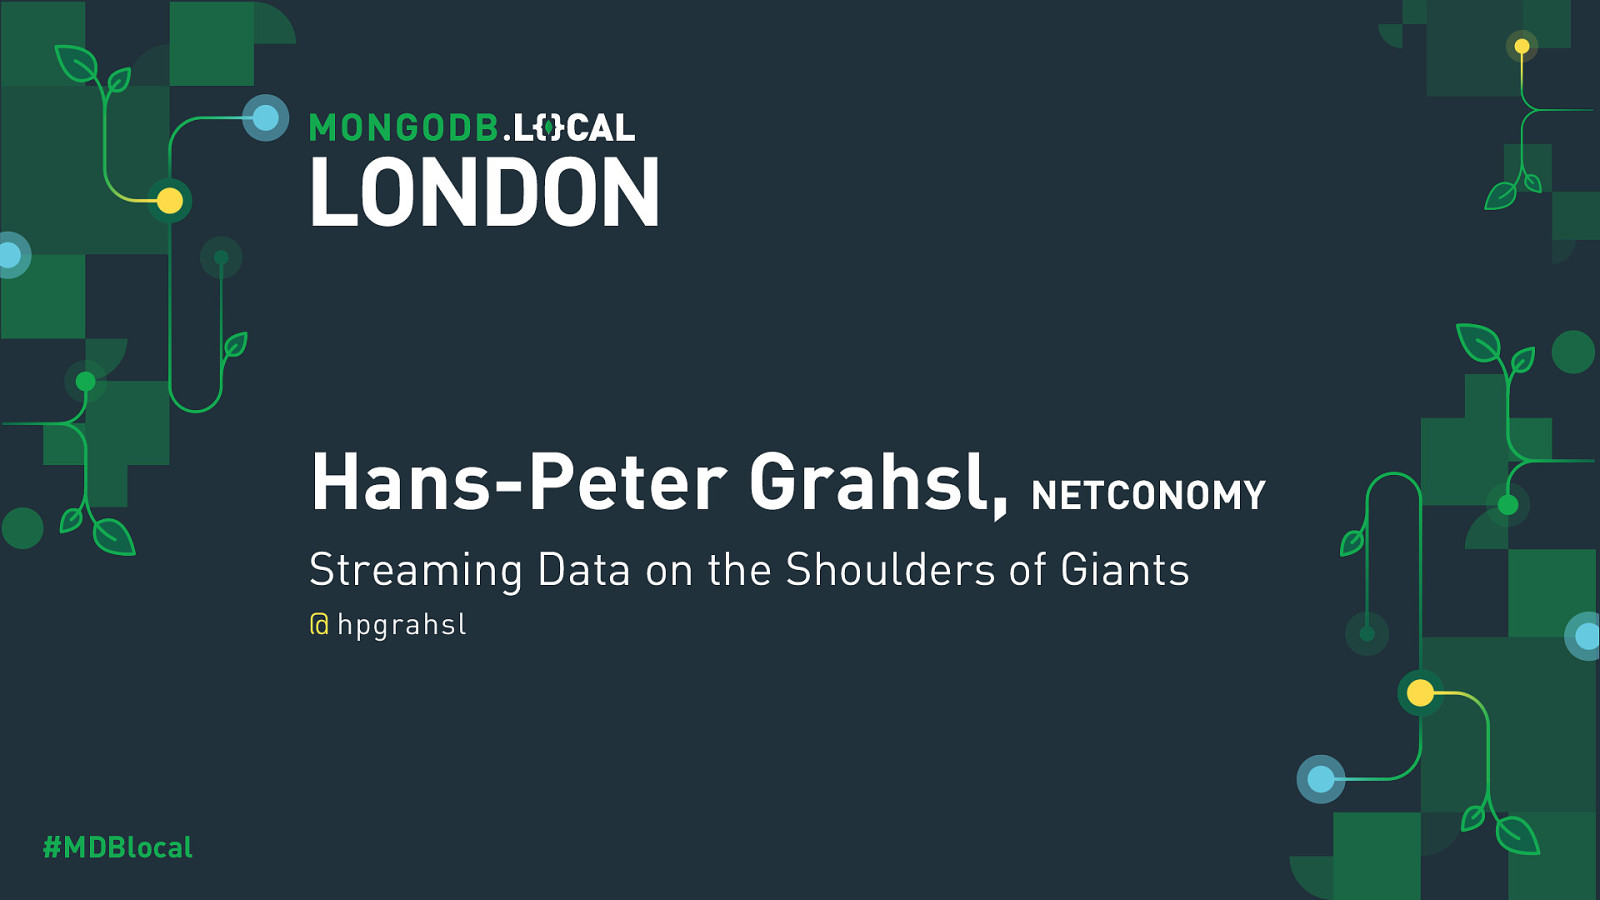 Streaming Data on the Shoulders of Giants